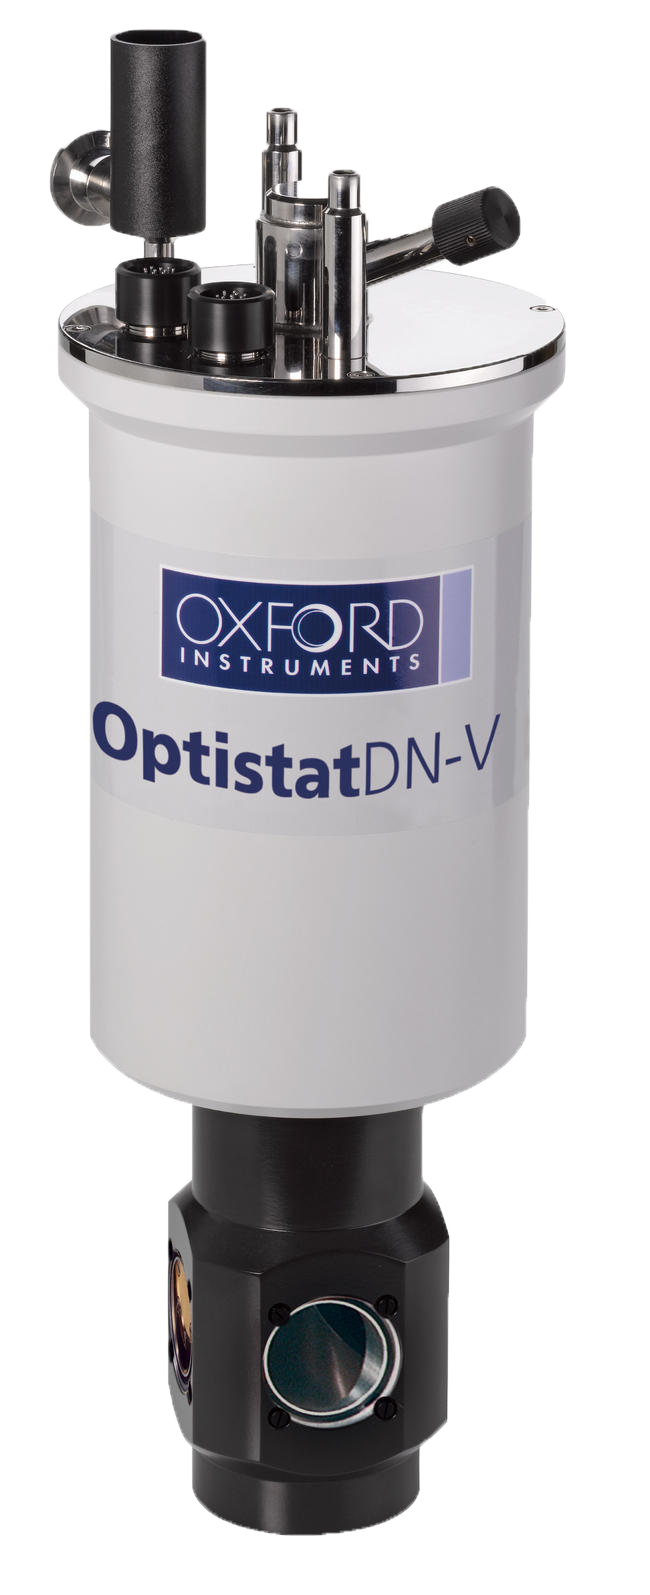 OptistatDN-V - Spectroscopy, cryostats, wet nitrogen cryostats, and sample-in-vaccuum for low temperature research and cryogenics